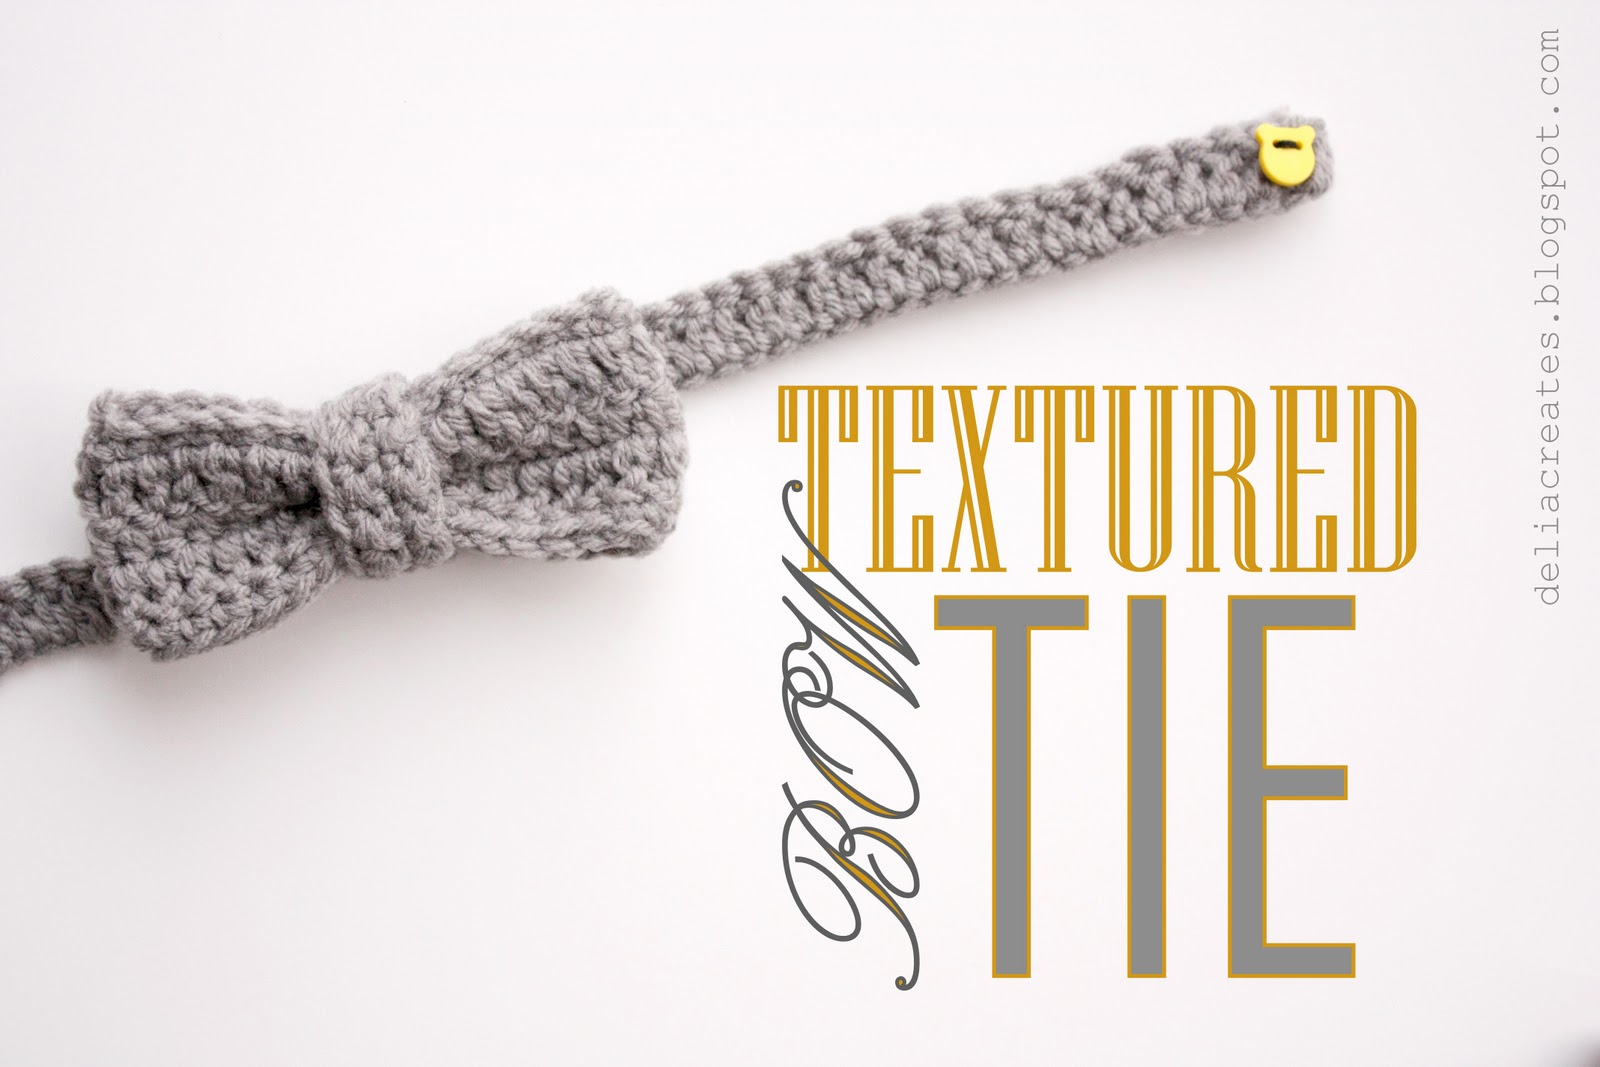 Textured bow tie it is just crocheted blocks sewed together pretty easy and do able even for the most beginner of crocheters when you sew your pieces together jeuxipadfo Images